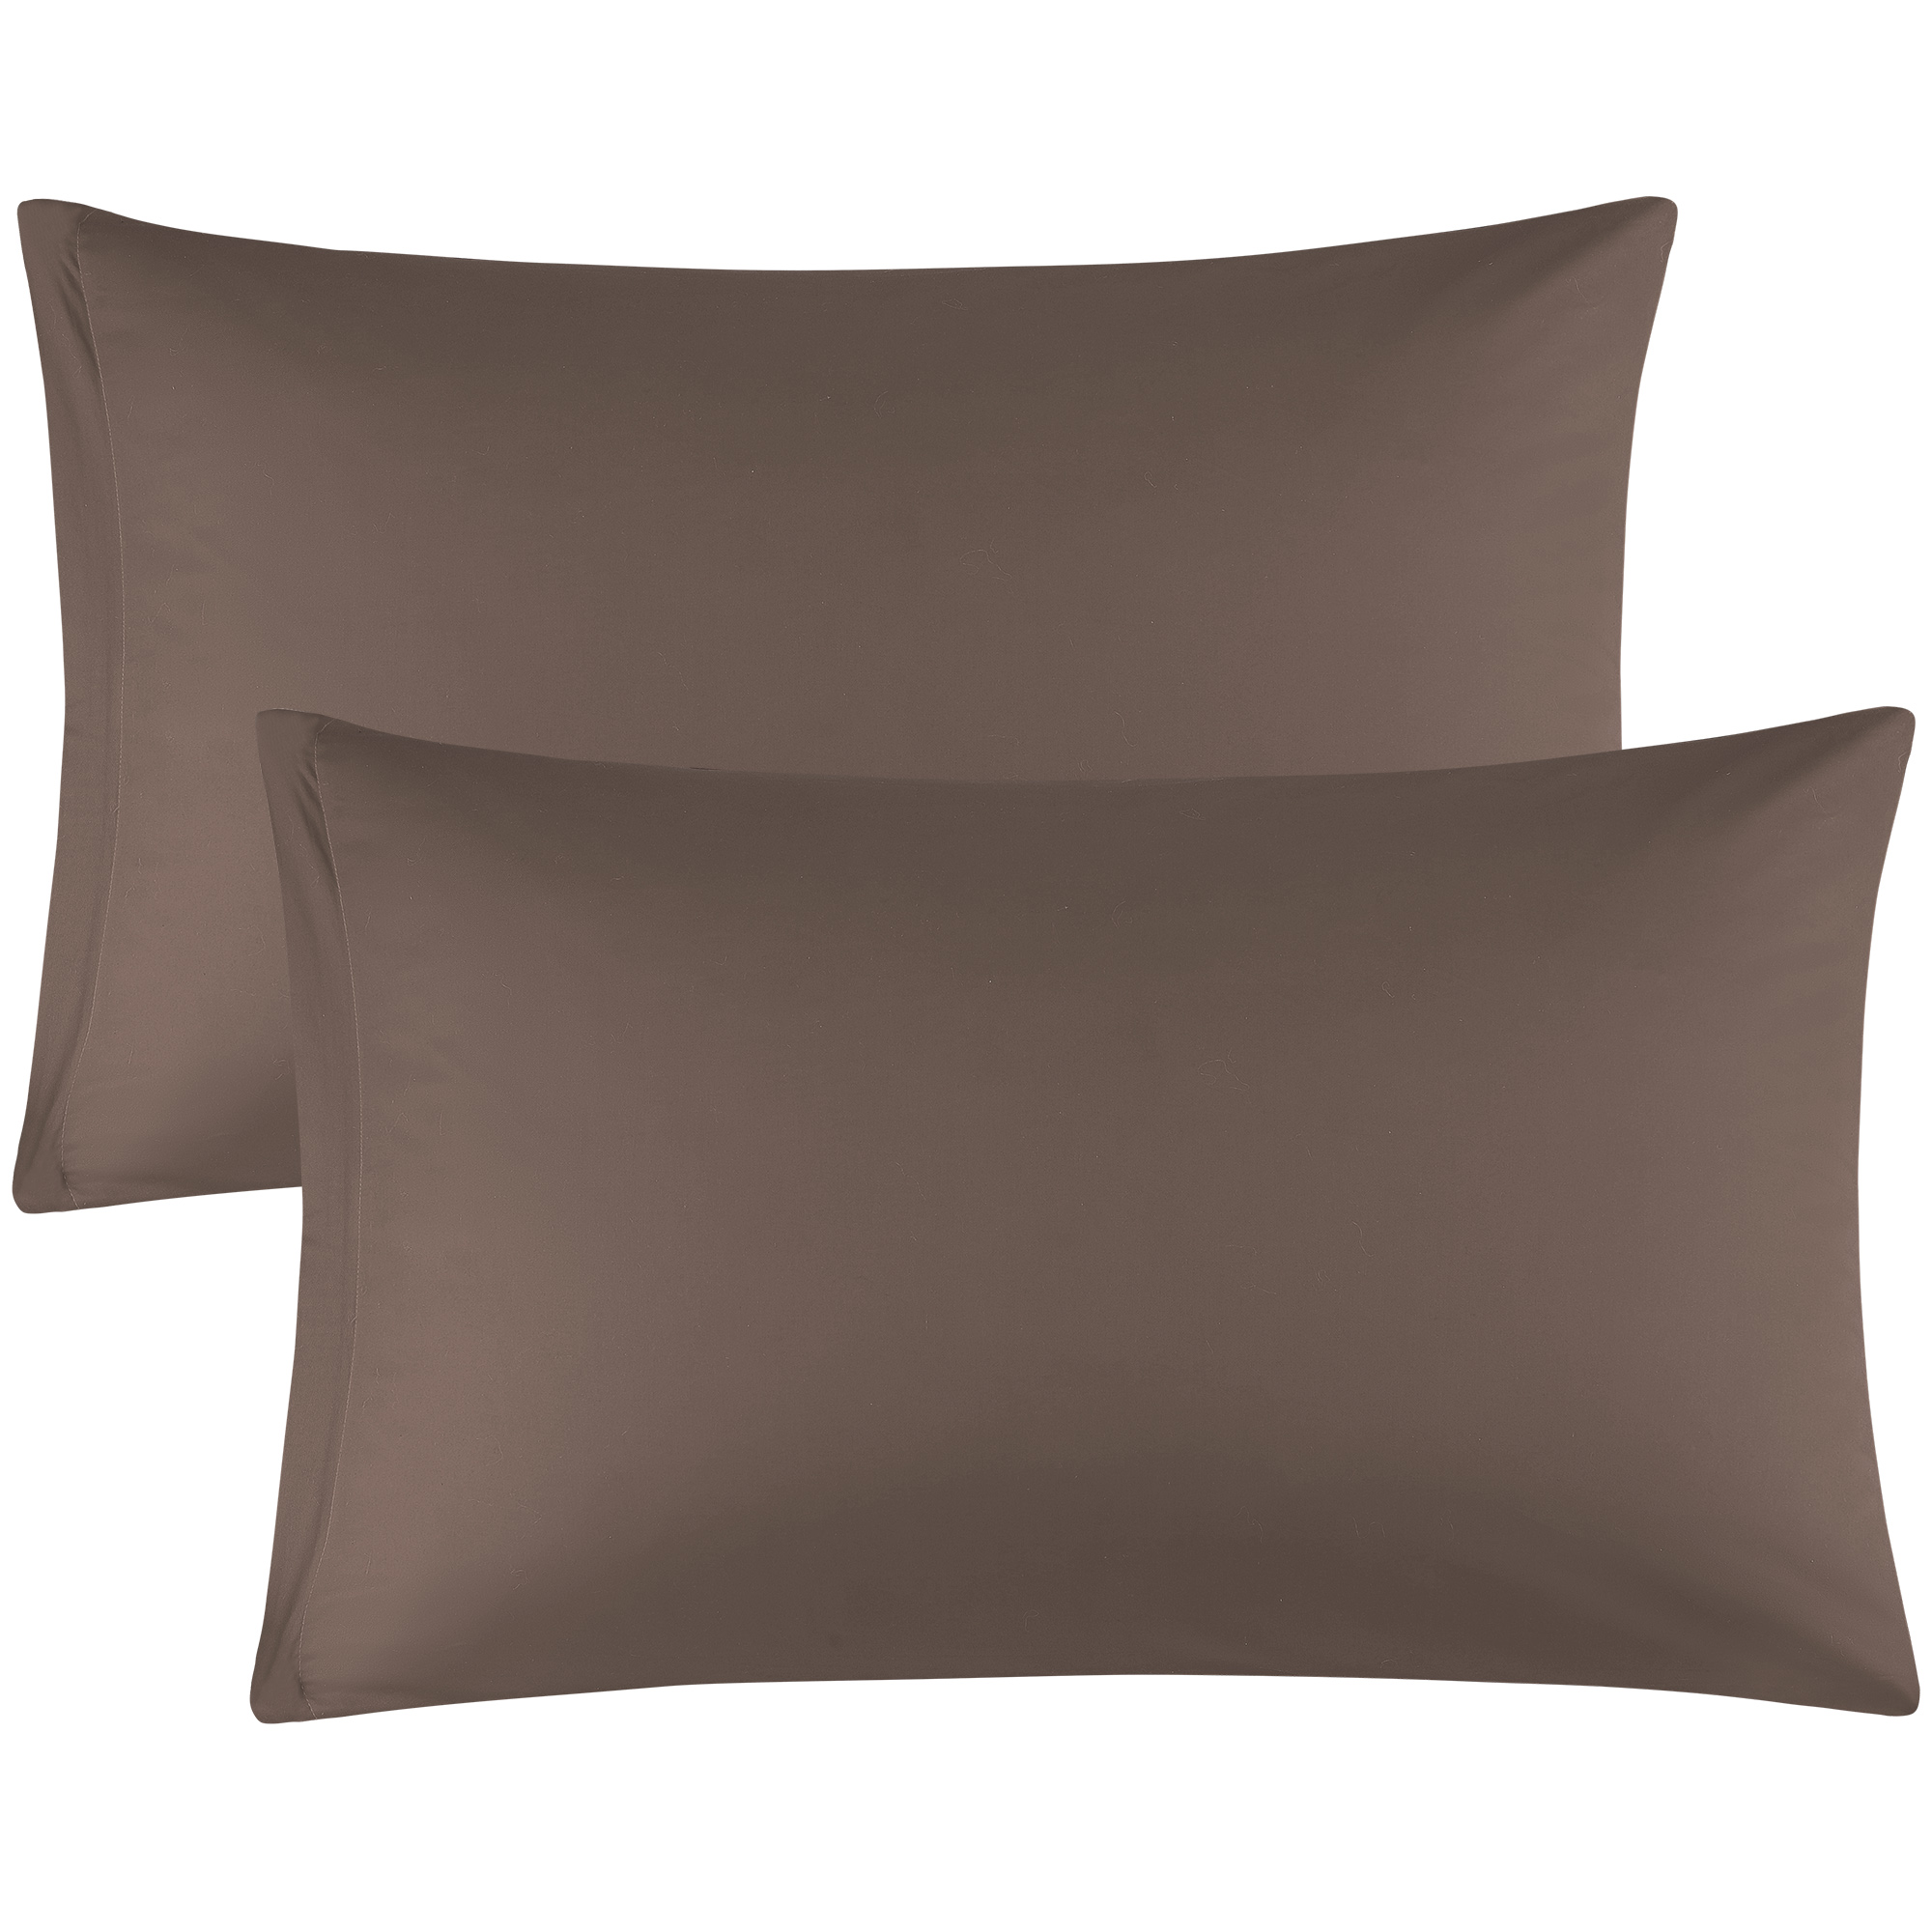 Zippered Pillowcases Covers Egyptian Cotton 2-Pack (20 x 30 Inch, Coffee Color)